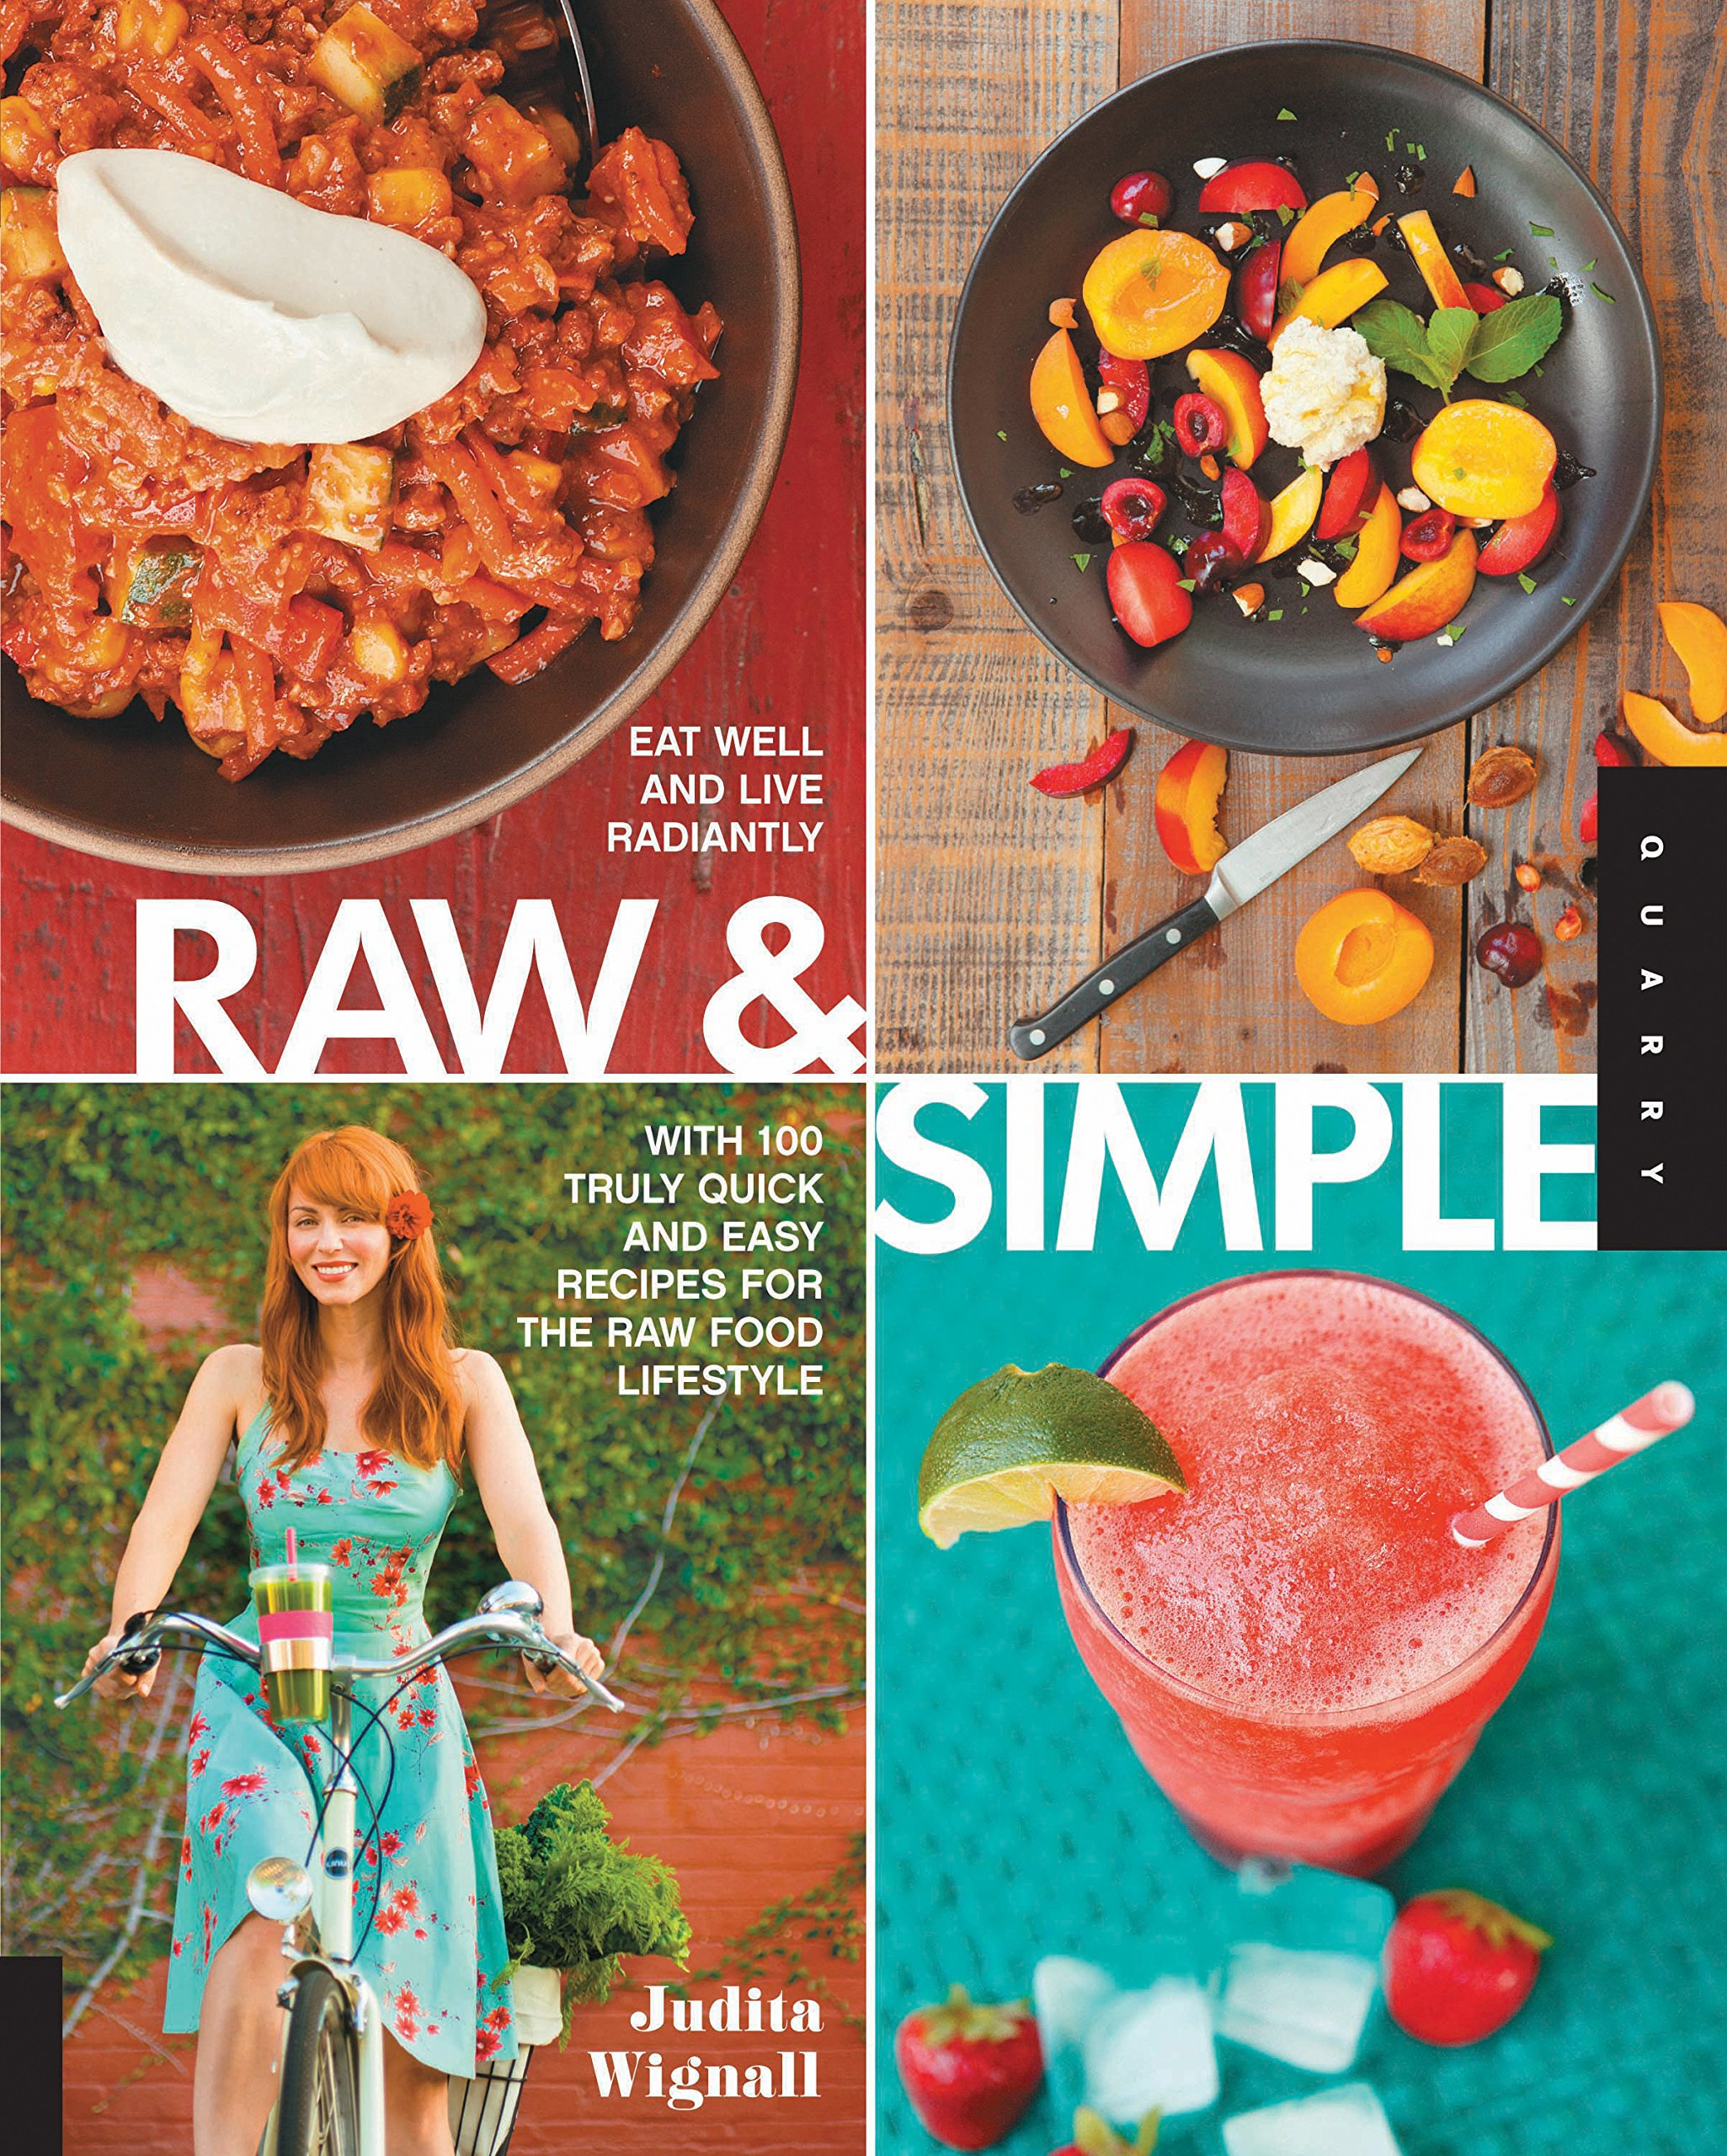 Raw and simple eat well and live radiantly with 100 truly quick and raw and simple eat well and live radiantly with 100 truly quick and easy recipes for the raw food lifestyle judita wignall 8601400987247 amazon forumfinder Choice Image